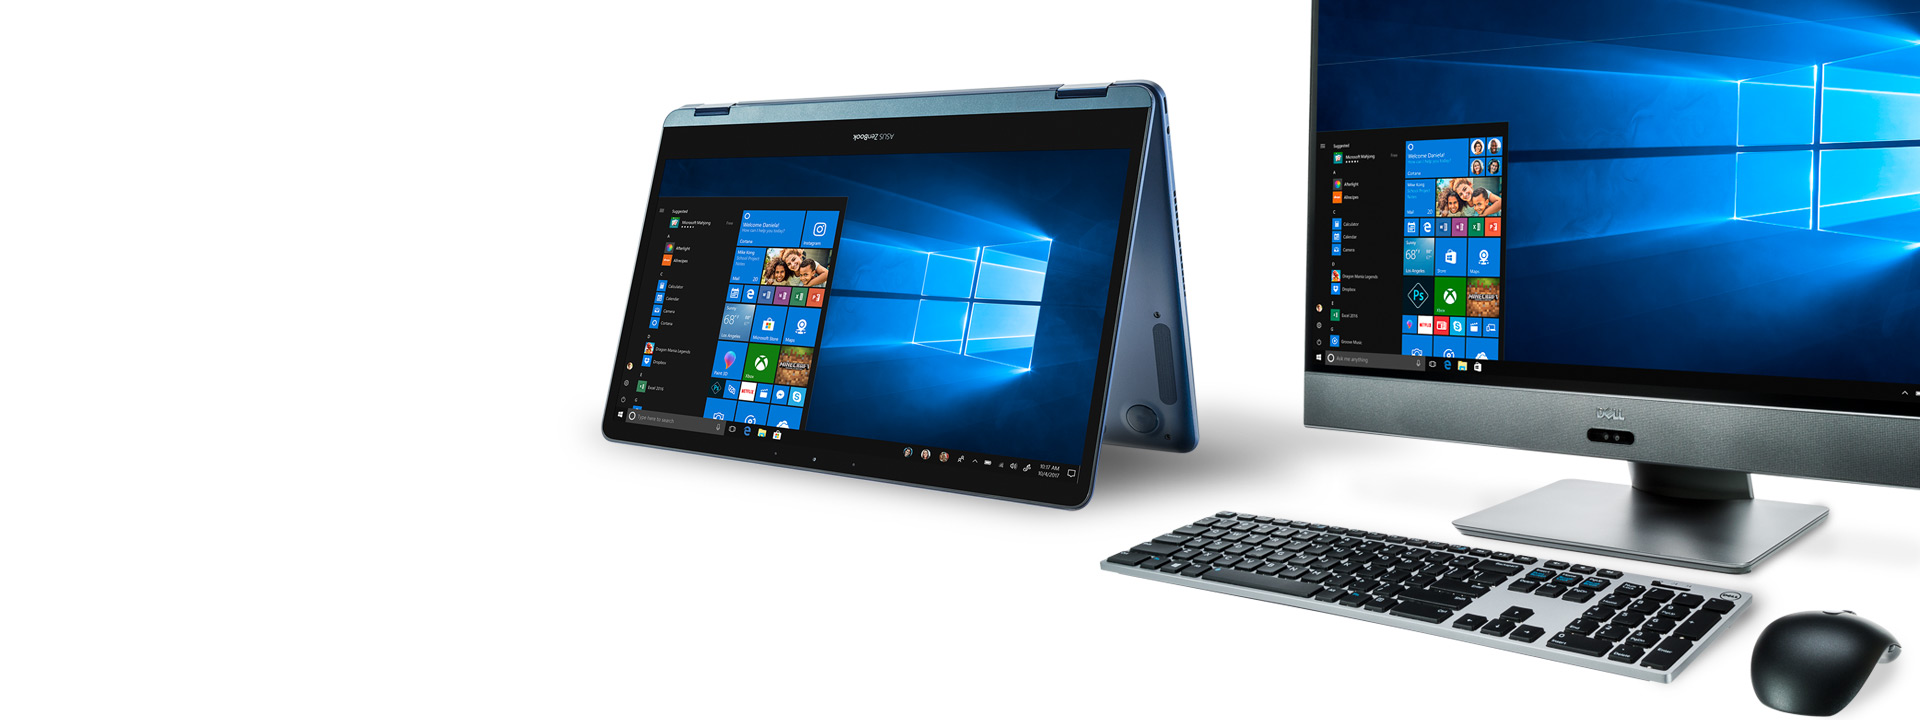 A Windows 10 2-in-1 computer with the keyboard partially flipped behind the screen for tablet usage displaying a Windows 10 start screen. It is sitting next to a Windows 10 all-in-one computer showing a start screen.